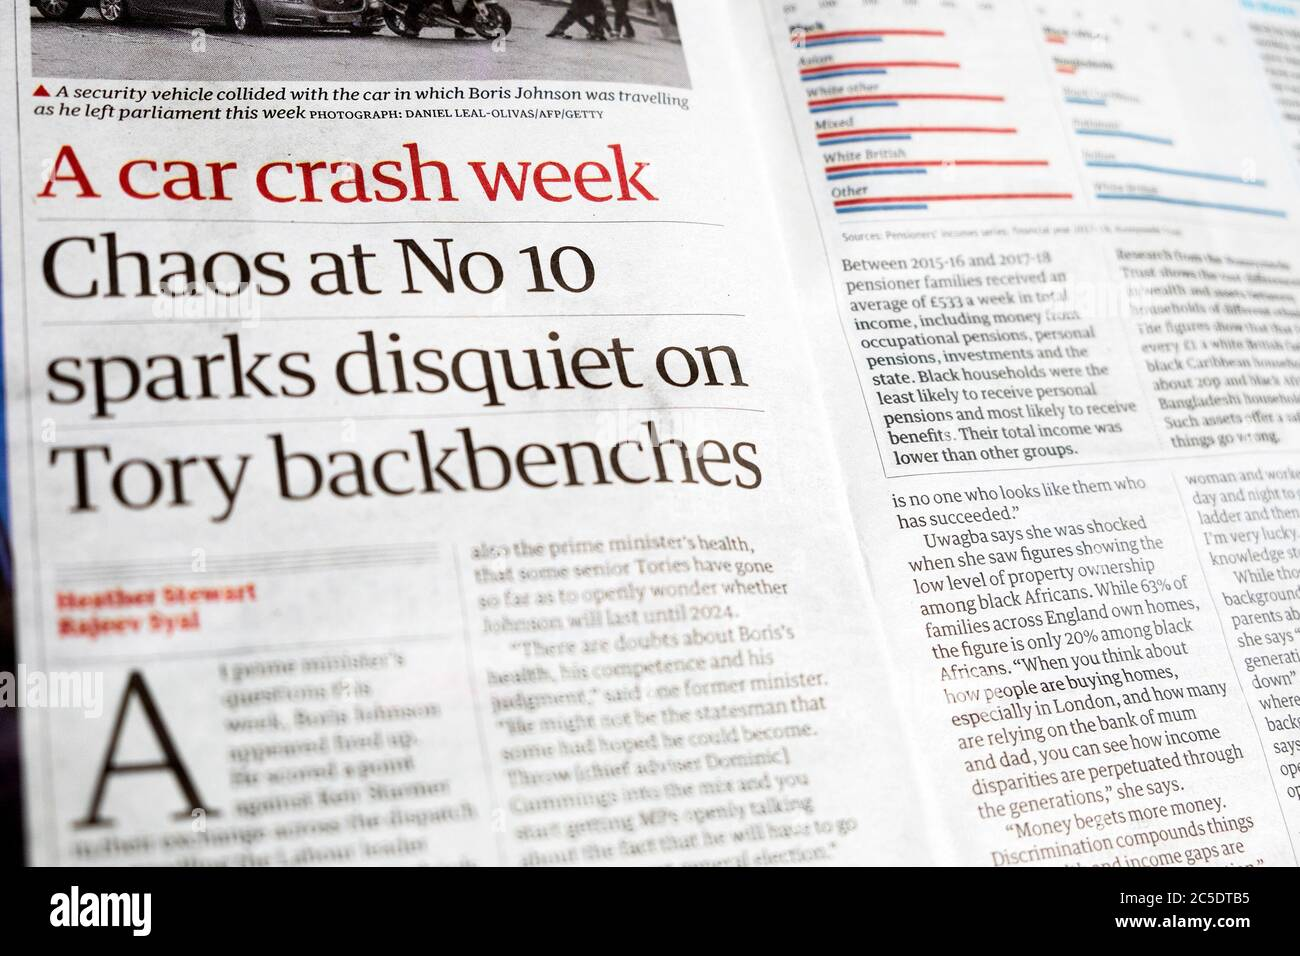 """"""" 'A car crash week' """"Chaos at No. 10 sparks disquiet on Tory backbenches""""  in Guardian newspaper 20 June 2020 London UK Stock Photo"""